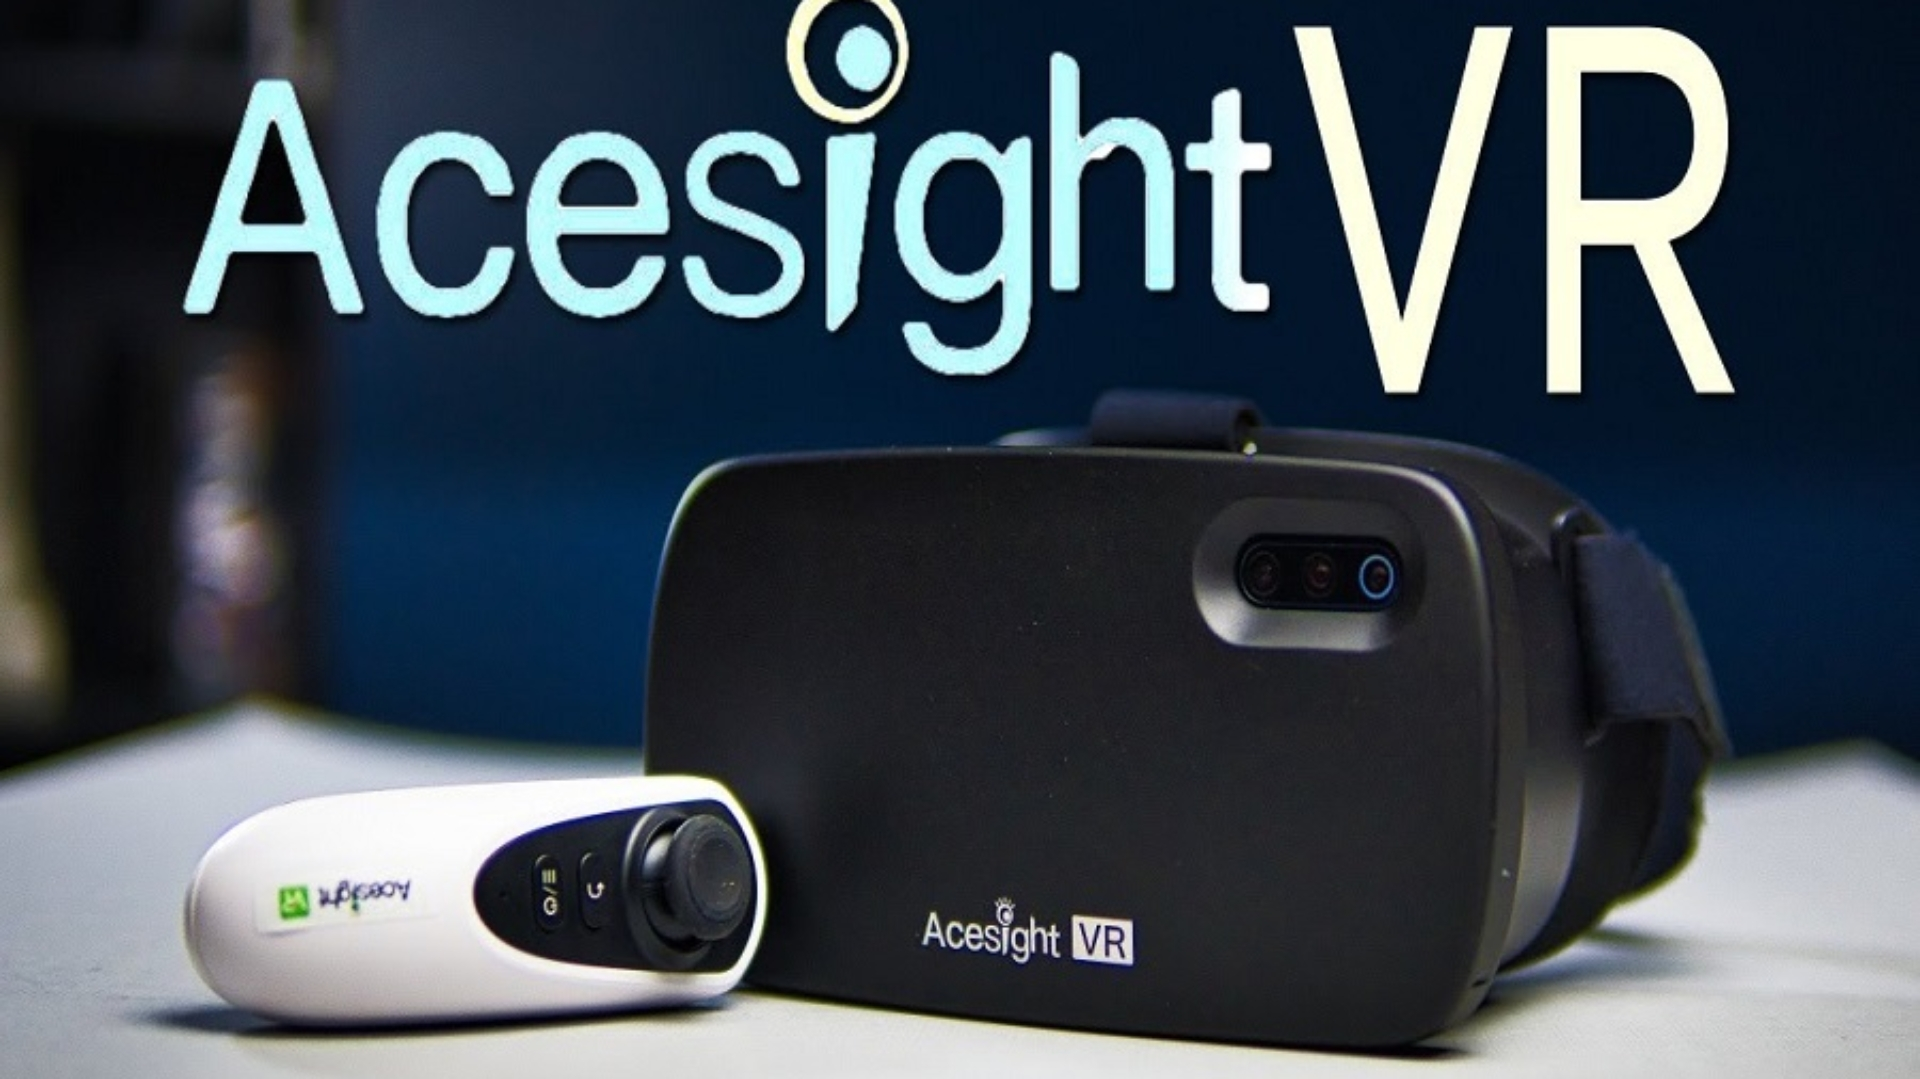 The Ace Sight VR